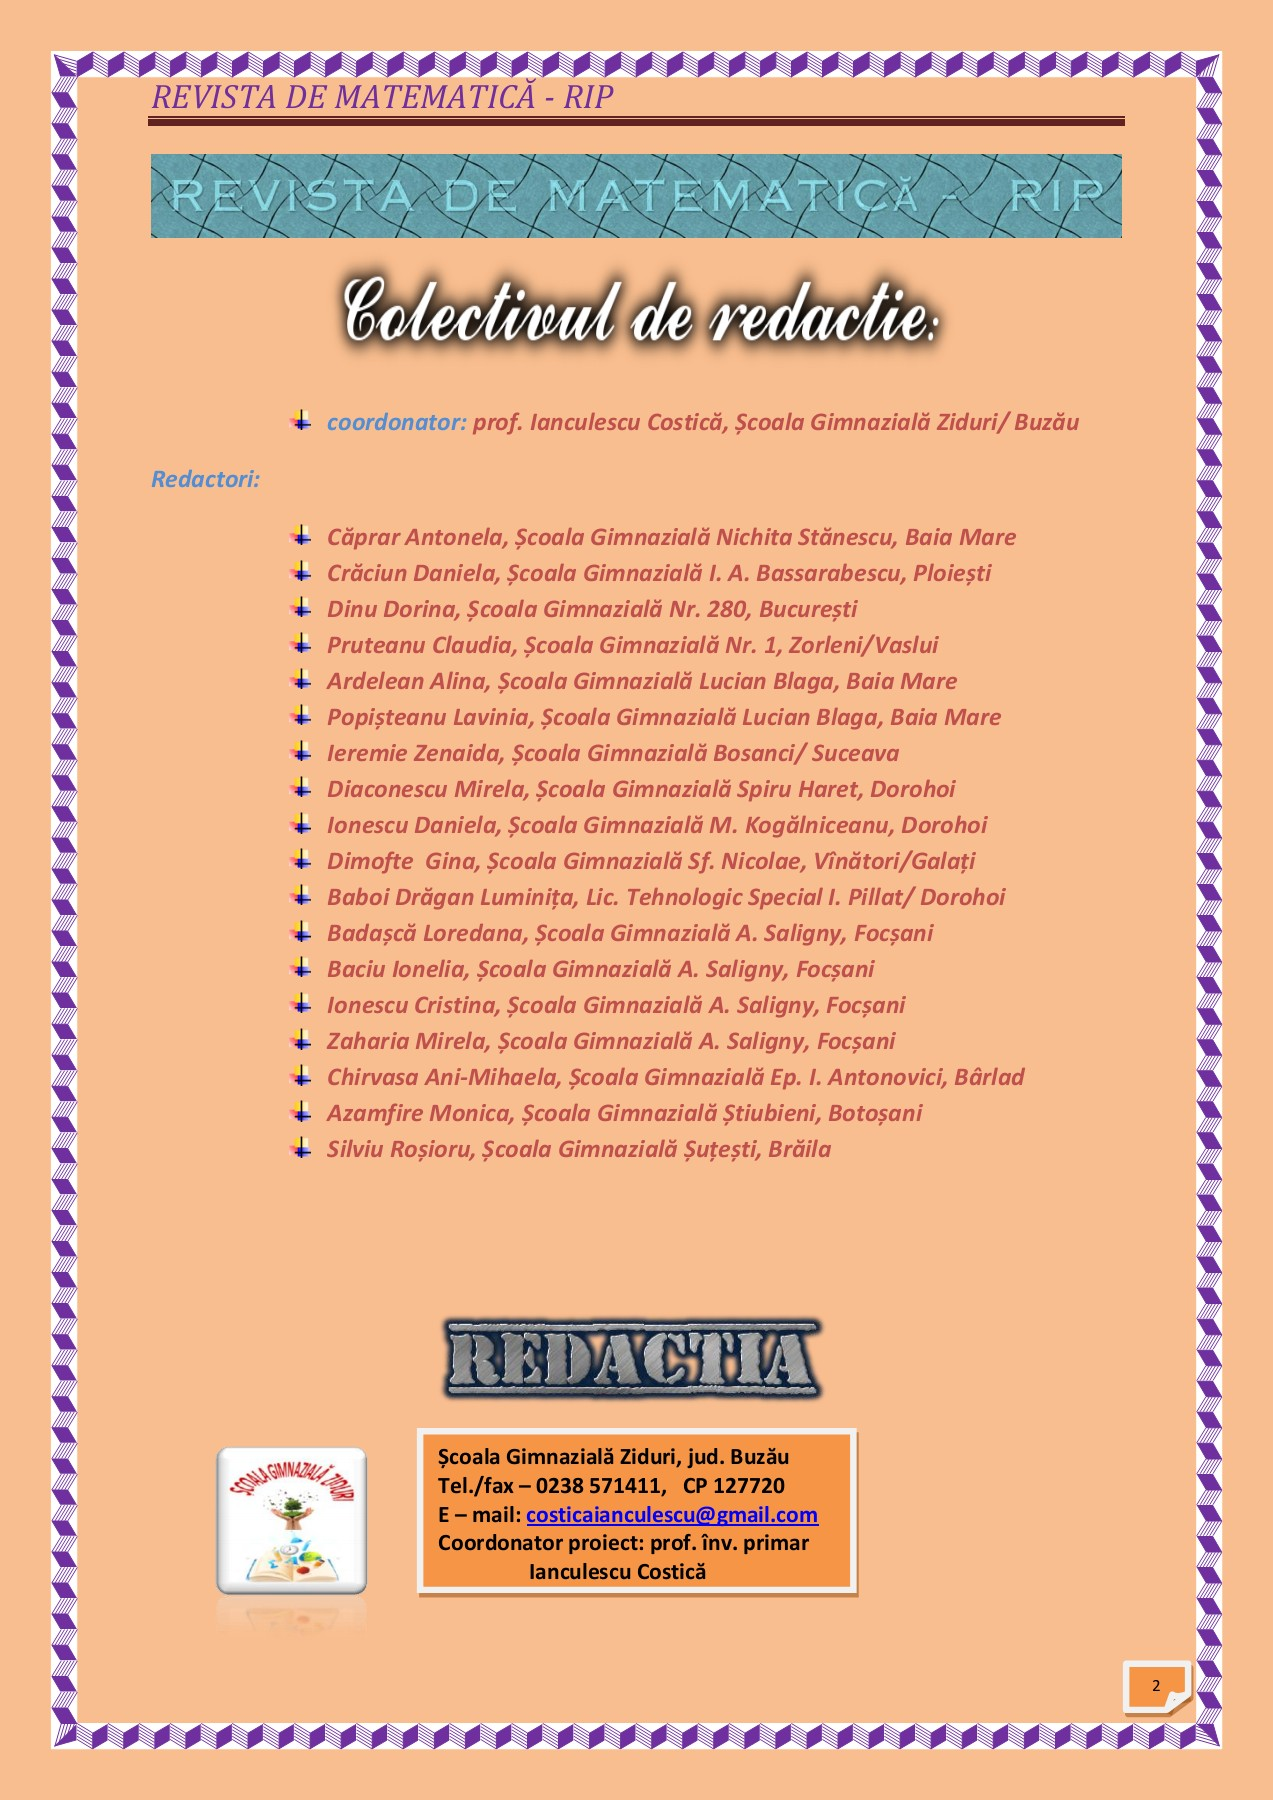 REVISTA MATEMATICA 4 Pages 1 - 27 - Text Version | AnyFlip